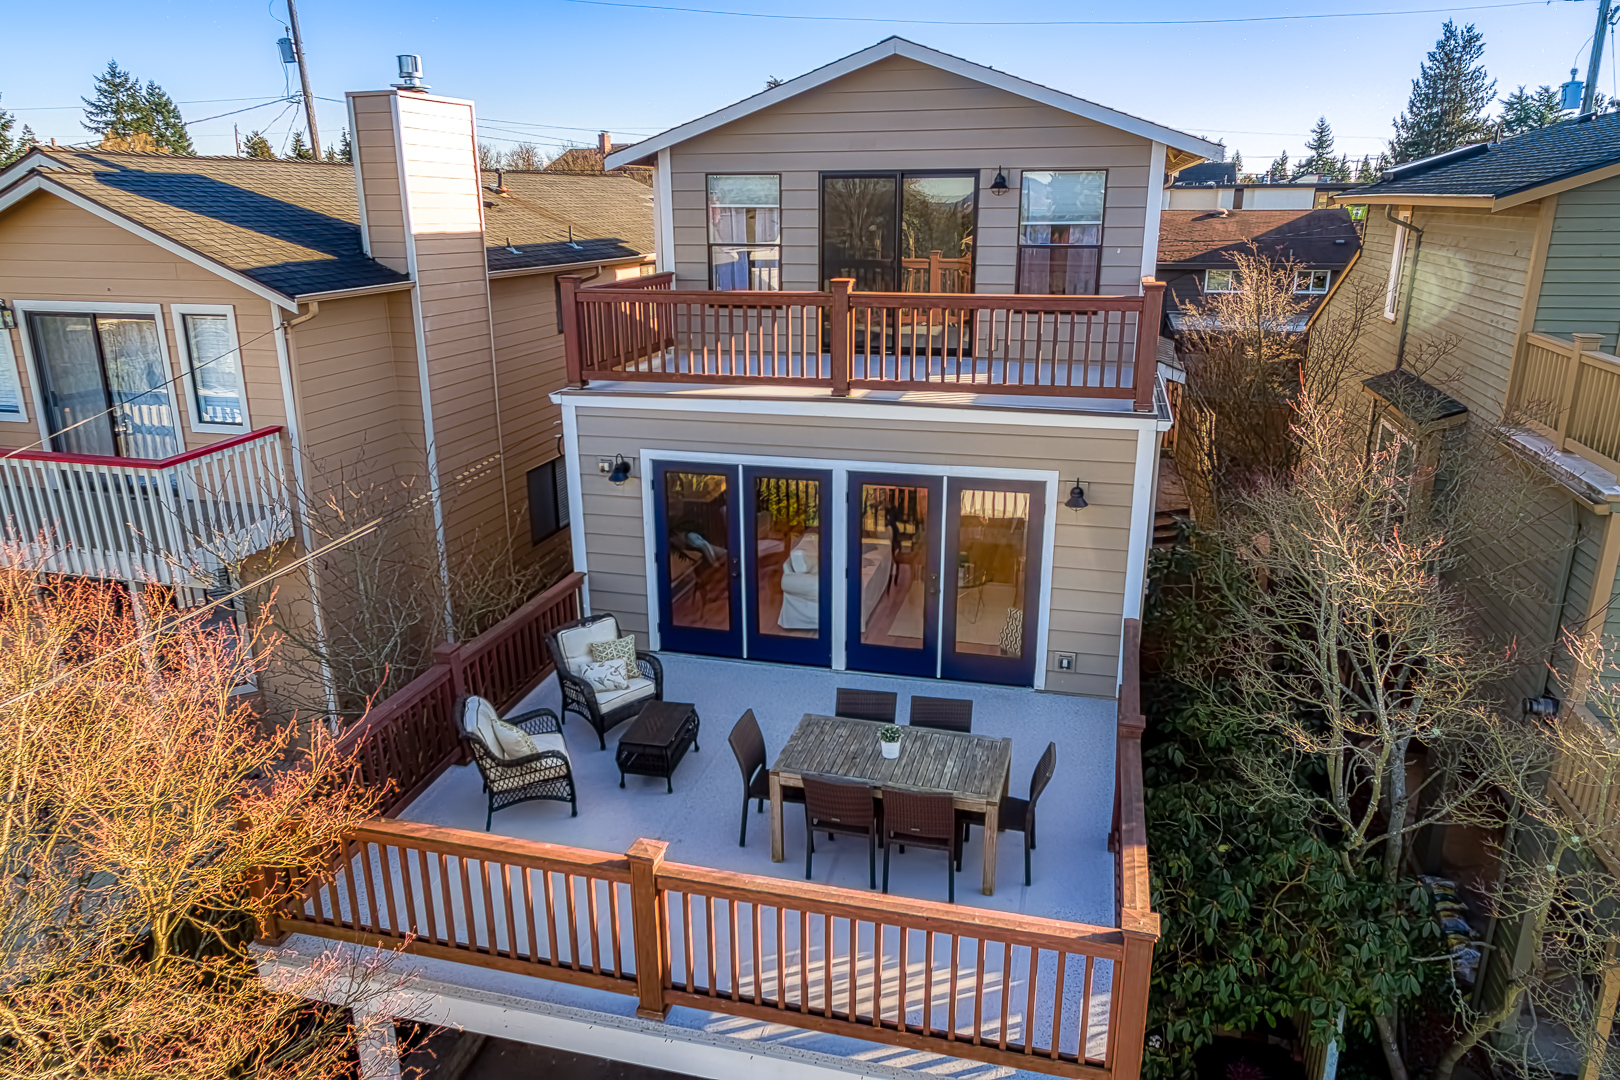 *2643 NW 86th St., Seattle | $885,000